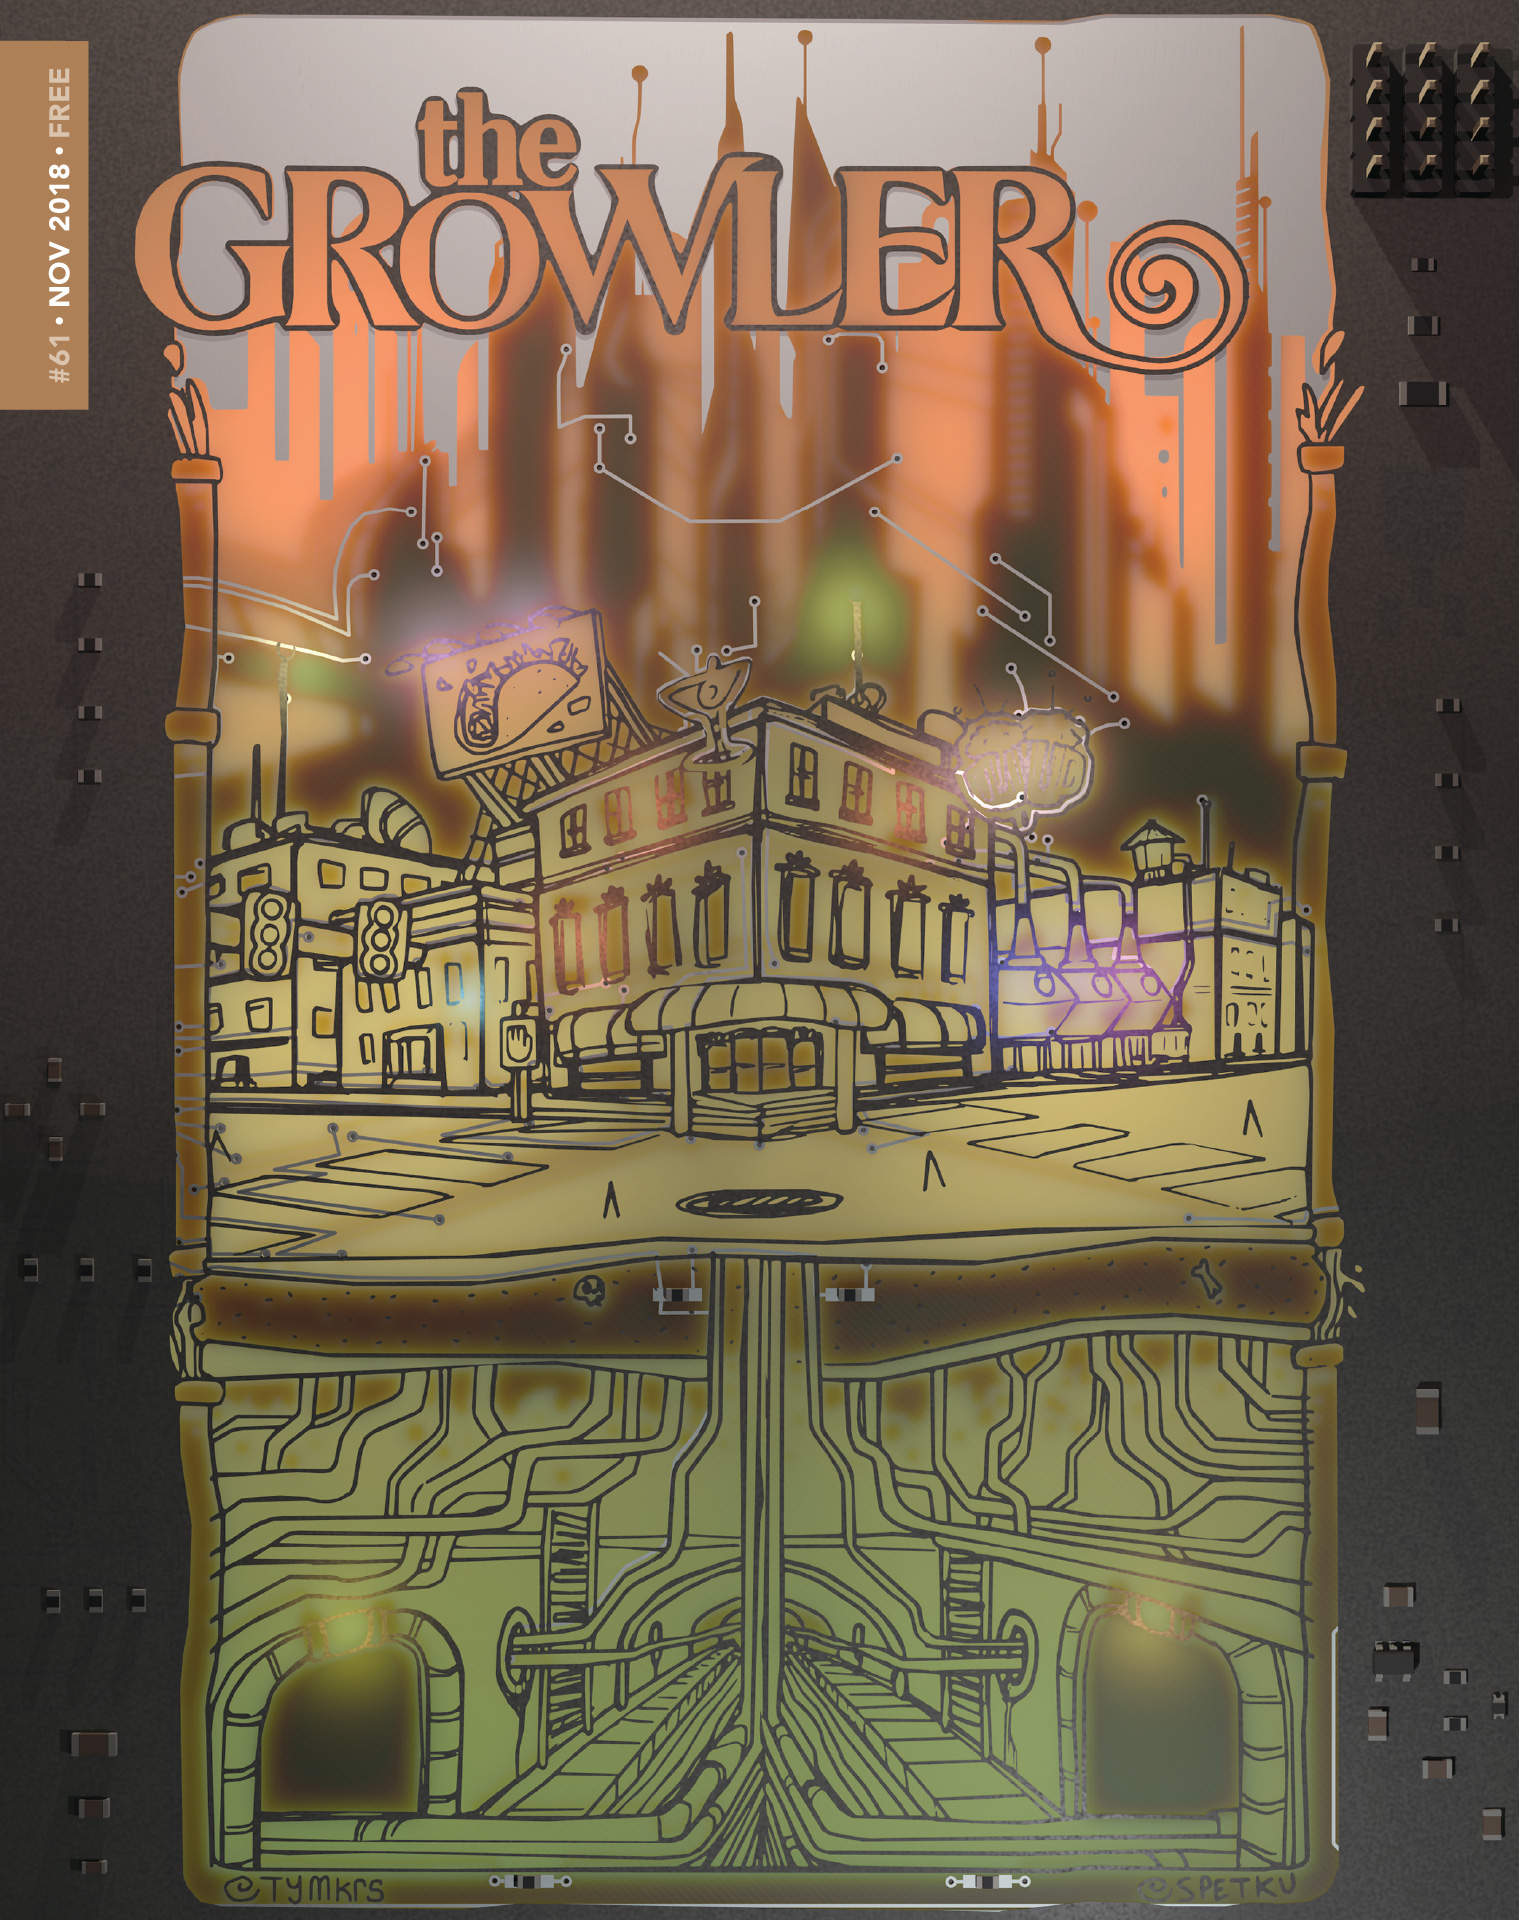 The Growler Issue 61 cover art // Art by Sarah Petkus, badge design by Tymkrs